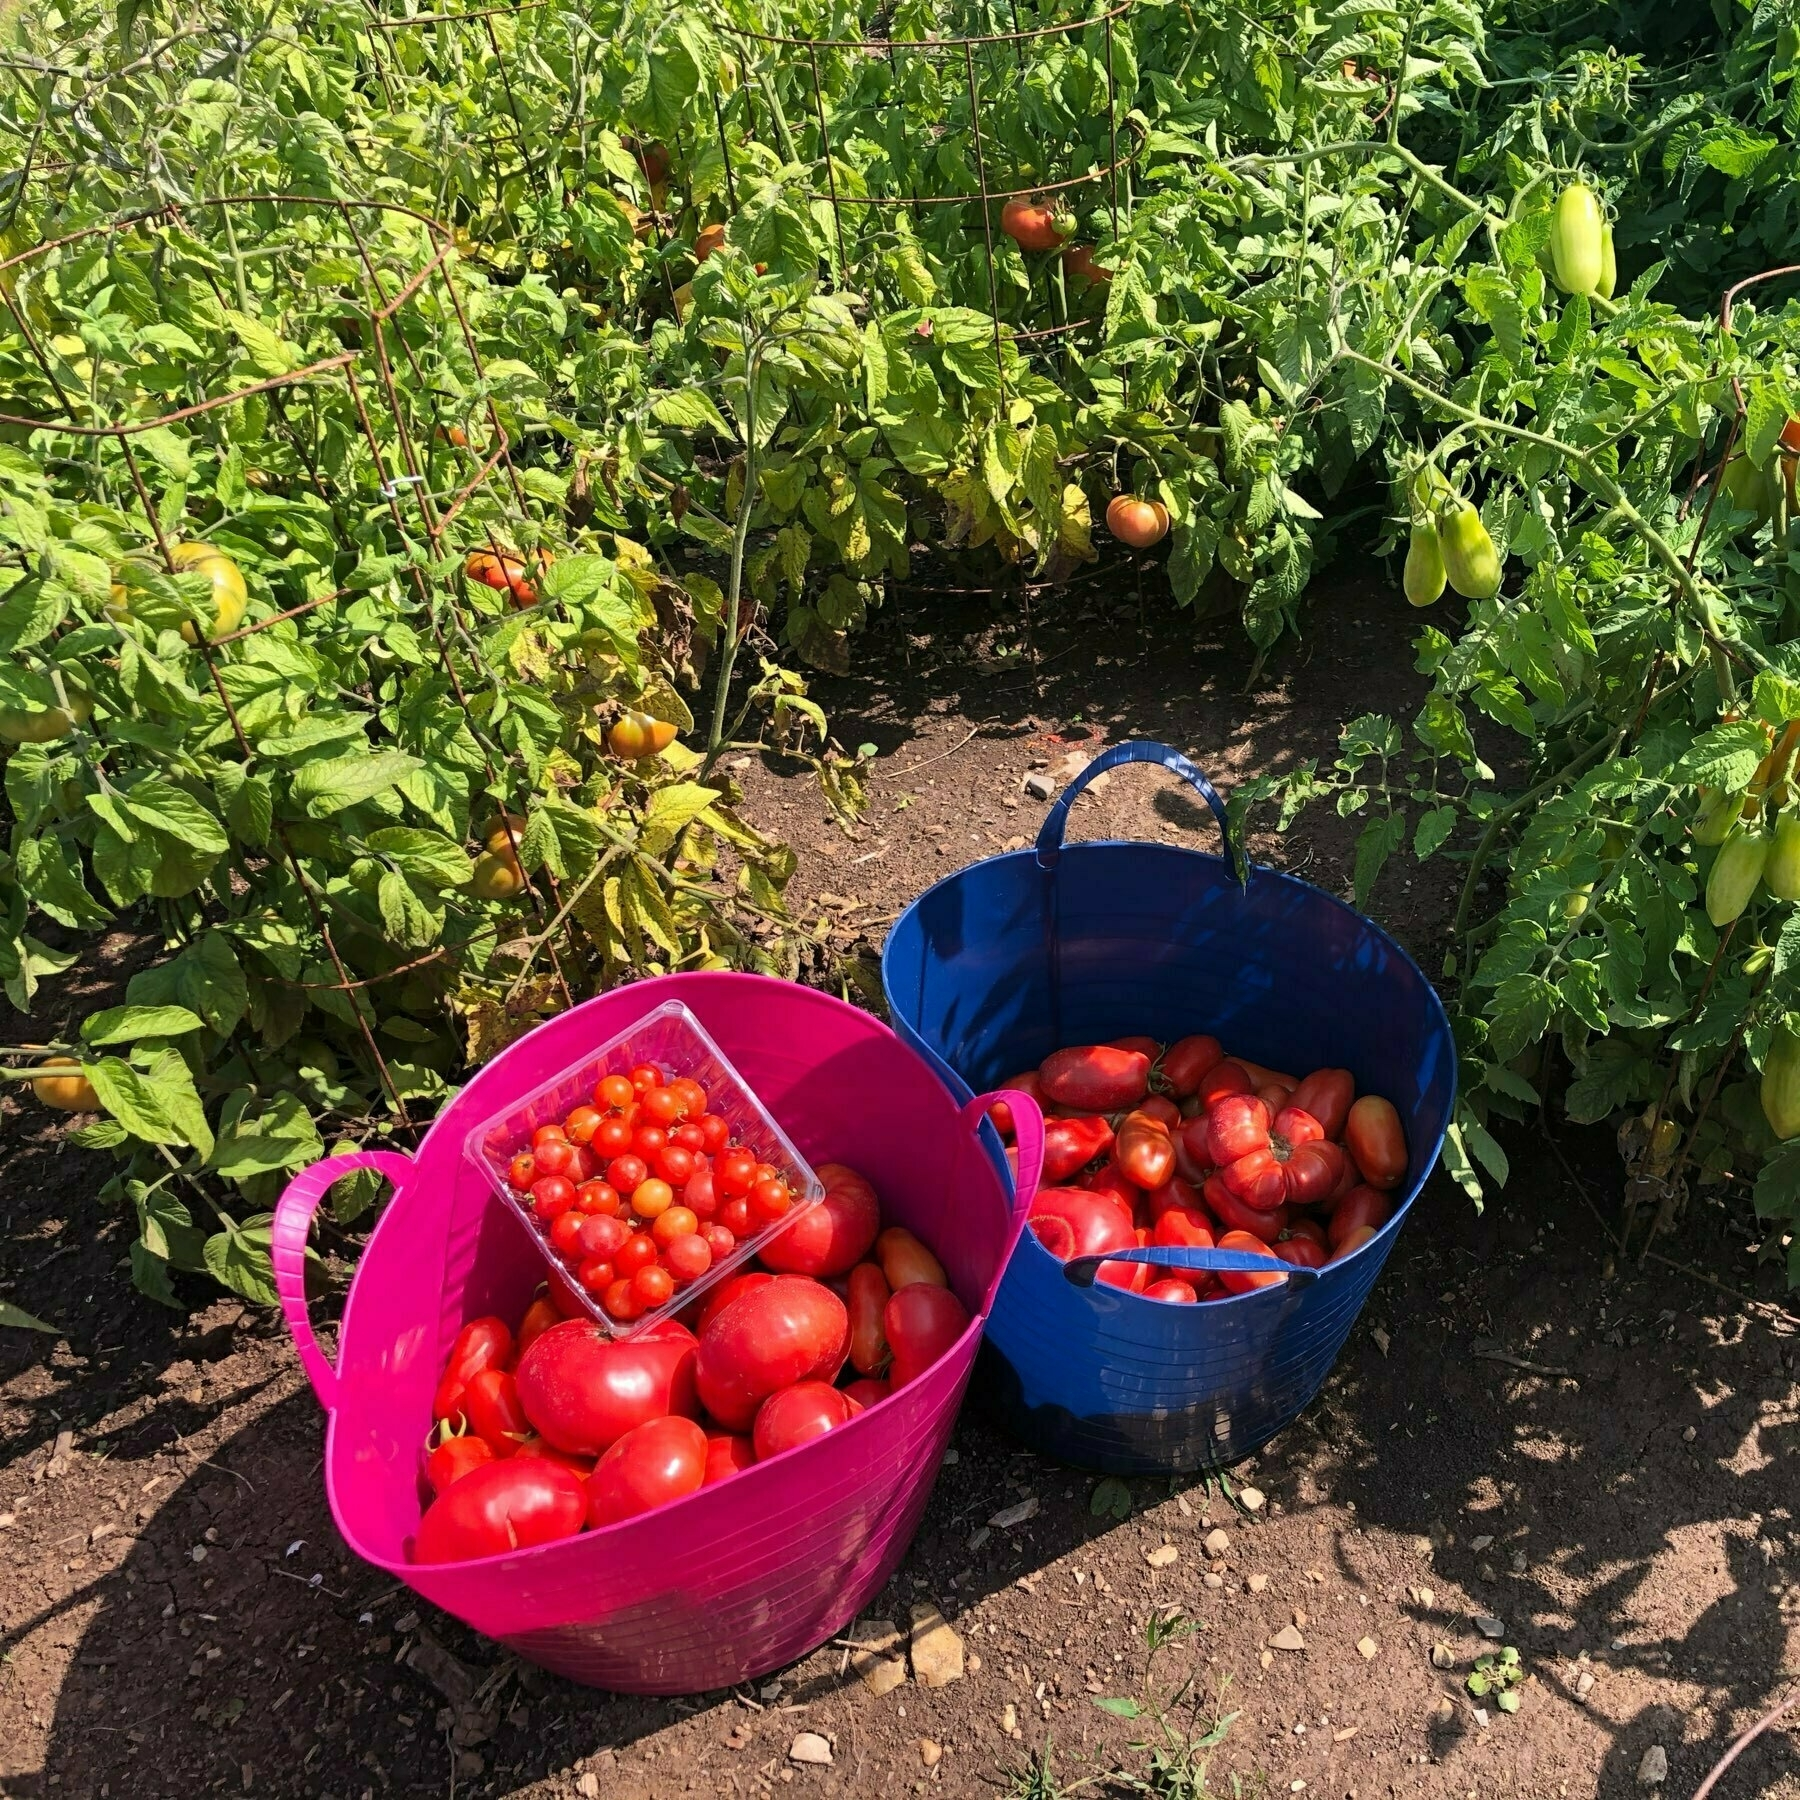 2 hampers and a small box of tomatoes sitting amidst tomato plants